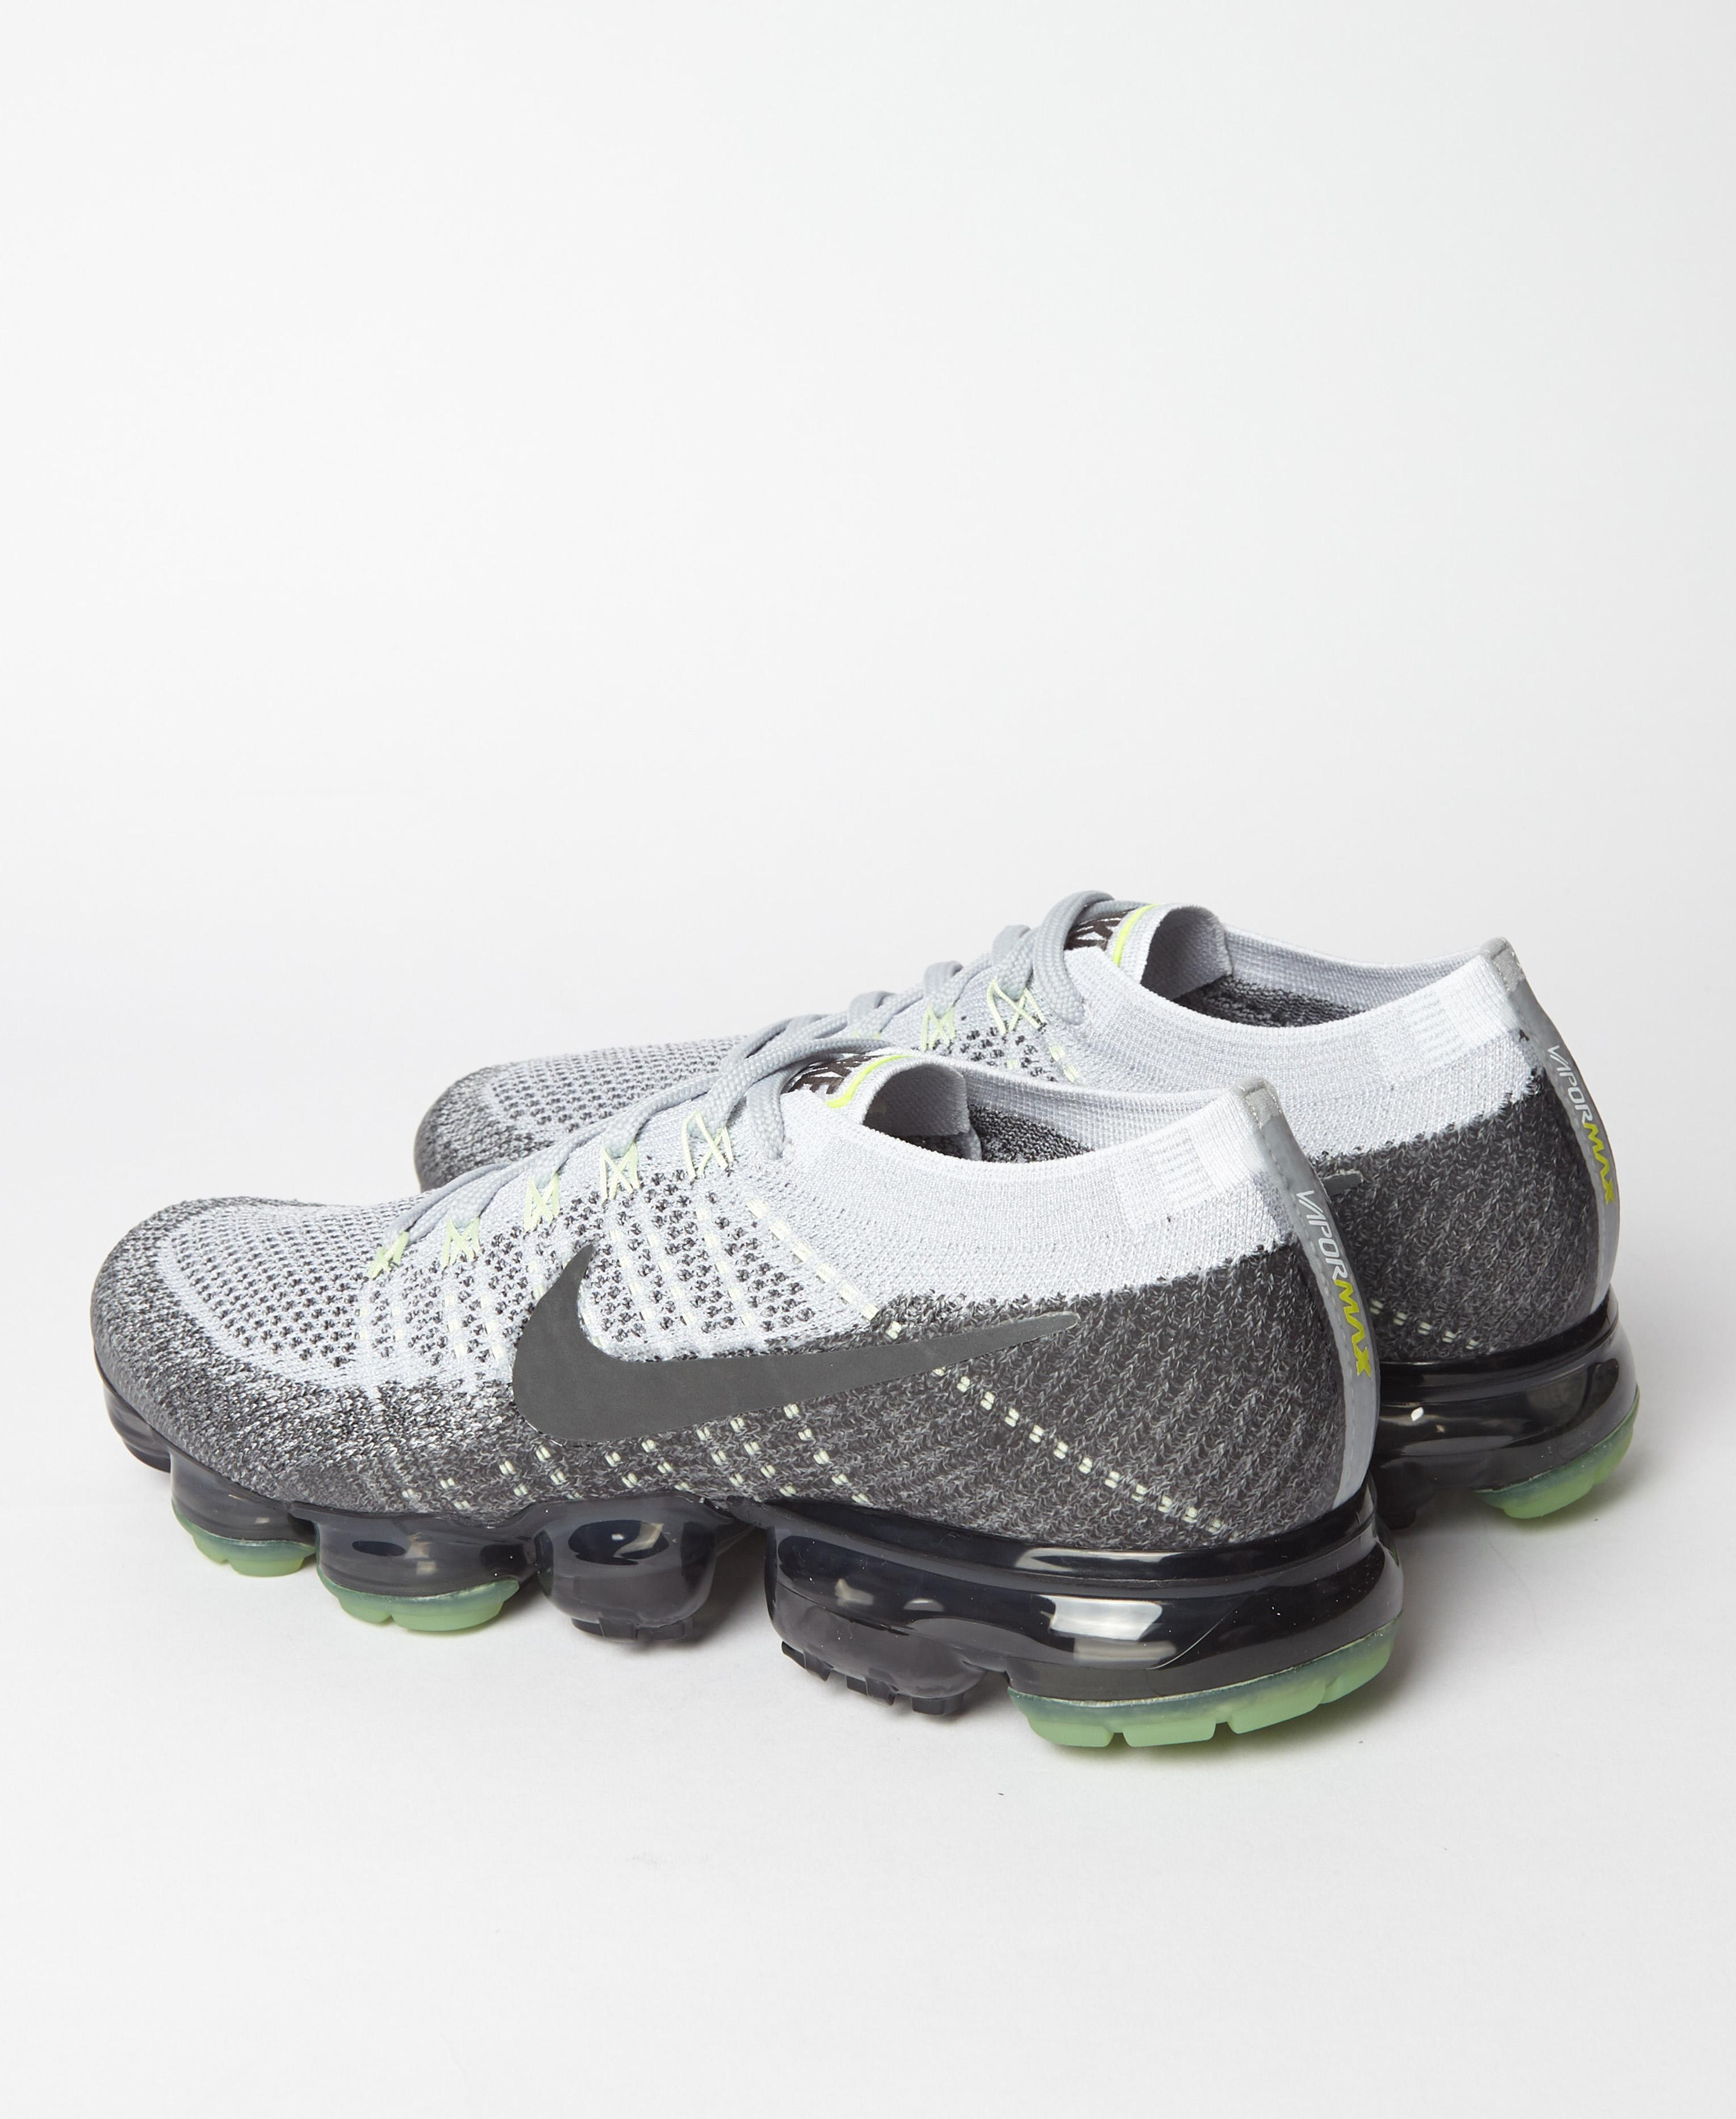 aa97fa40c045b Nike Air Vapormax Flyknit Heritage Pack Neon in Gray for Men - Lyst